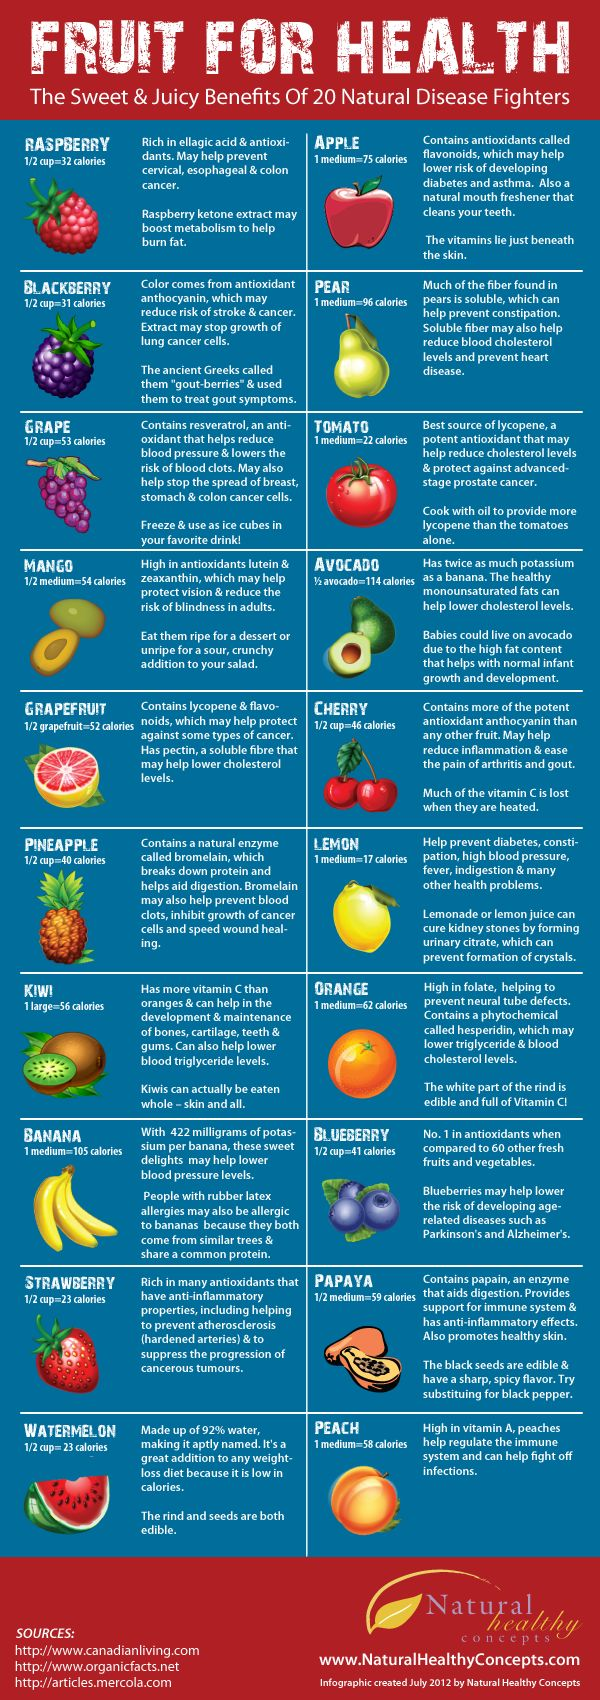 Fruit For Health  The Sweet & Juicy Benefits of 20 Natural Disease Fighters